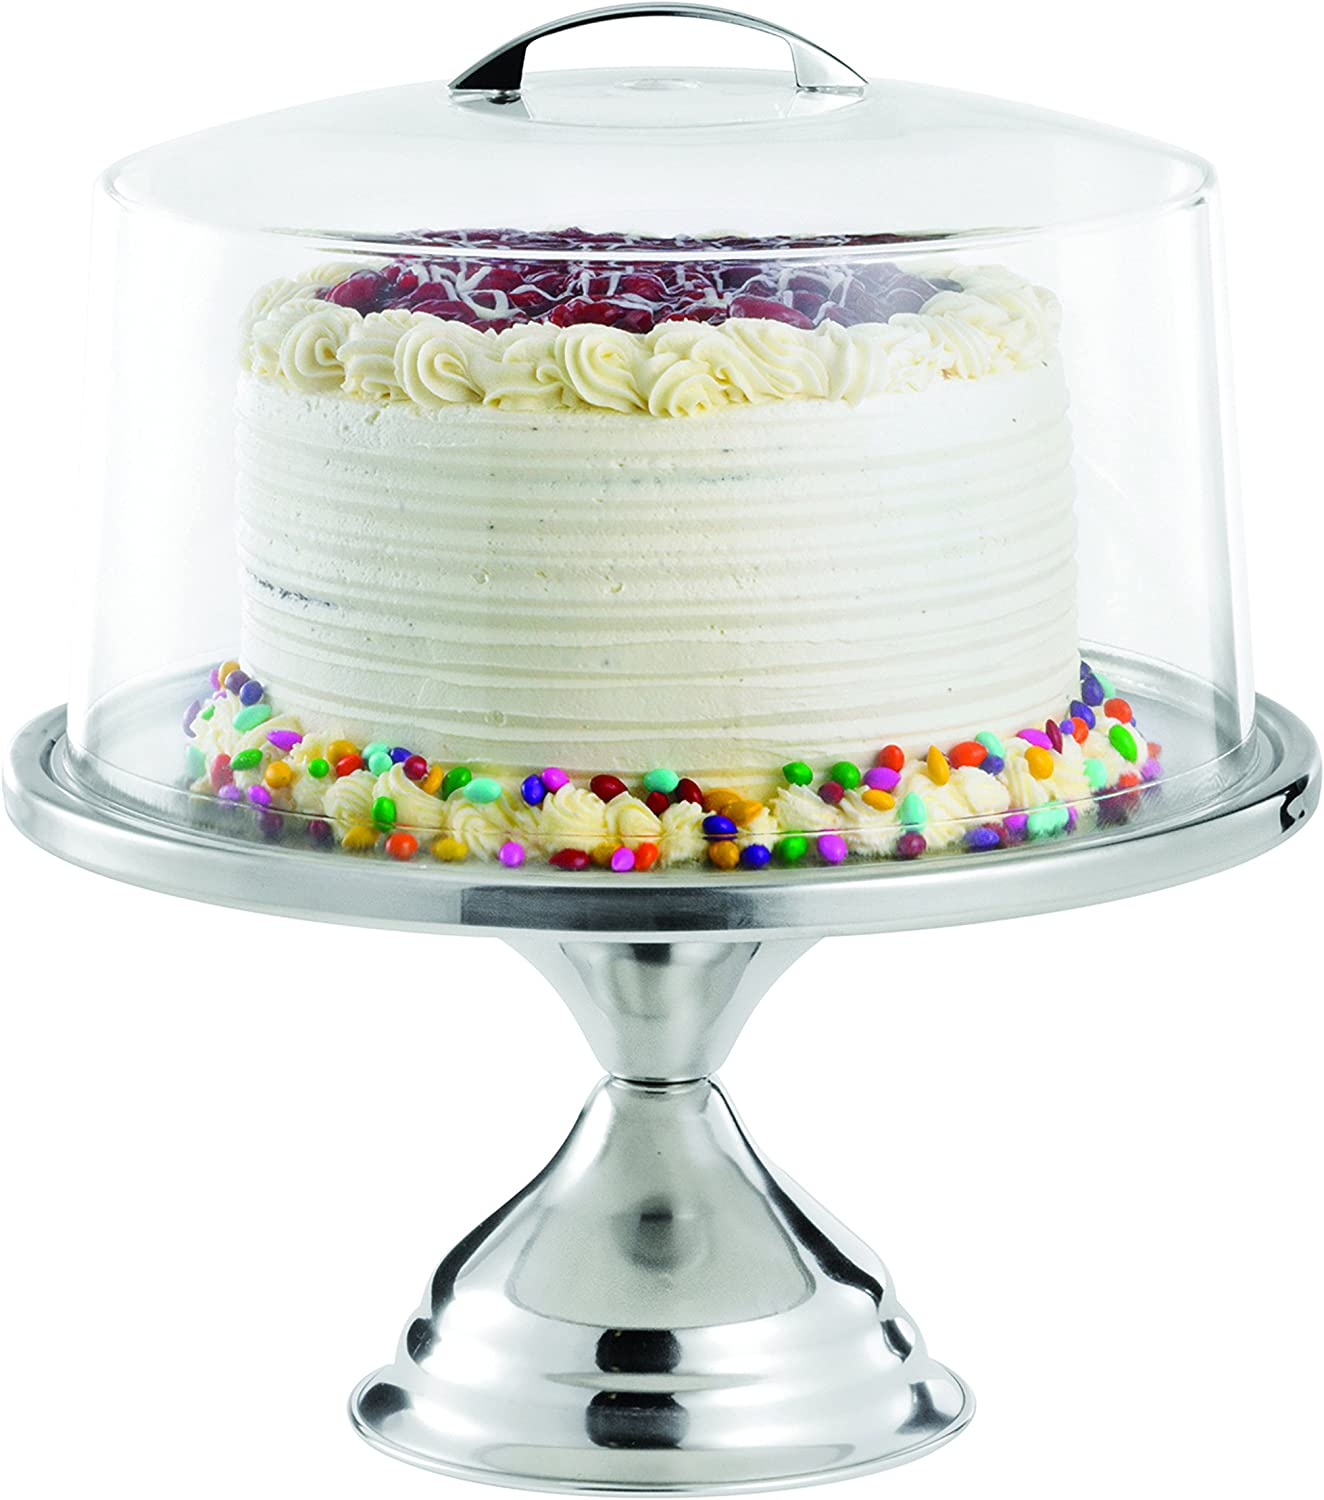 TableCraft Products 821422 Cake Stand & Cover Set, 12.75  Dia x 13.75  H